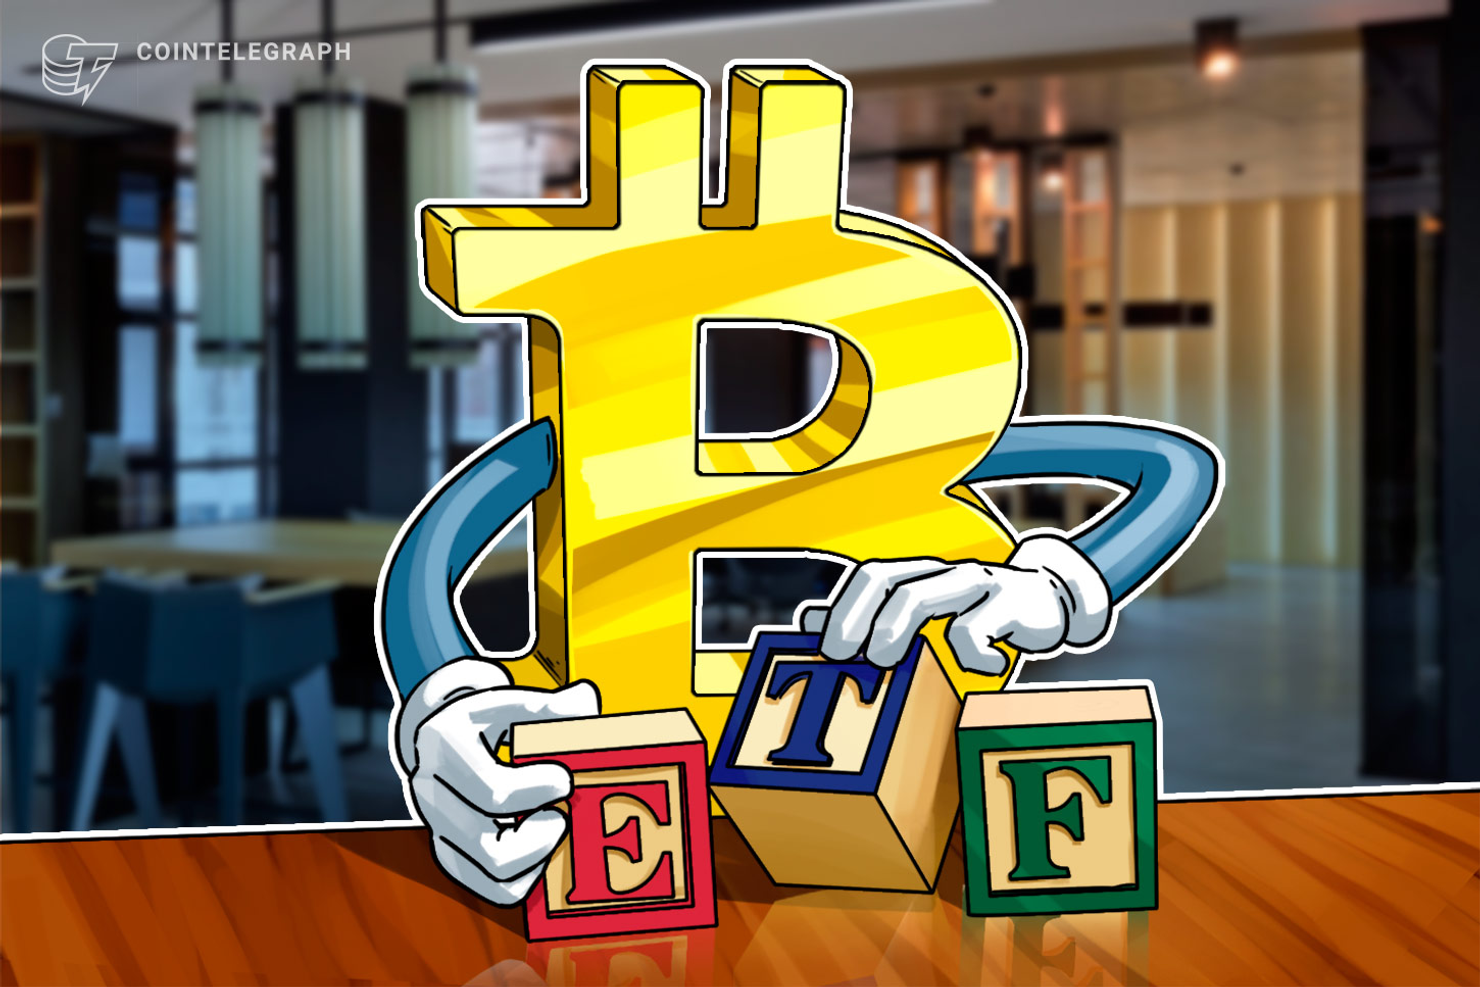 VanEck, SolidX to Offer Limited Bitcoin ETF for Institutions Via Exemption